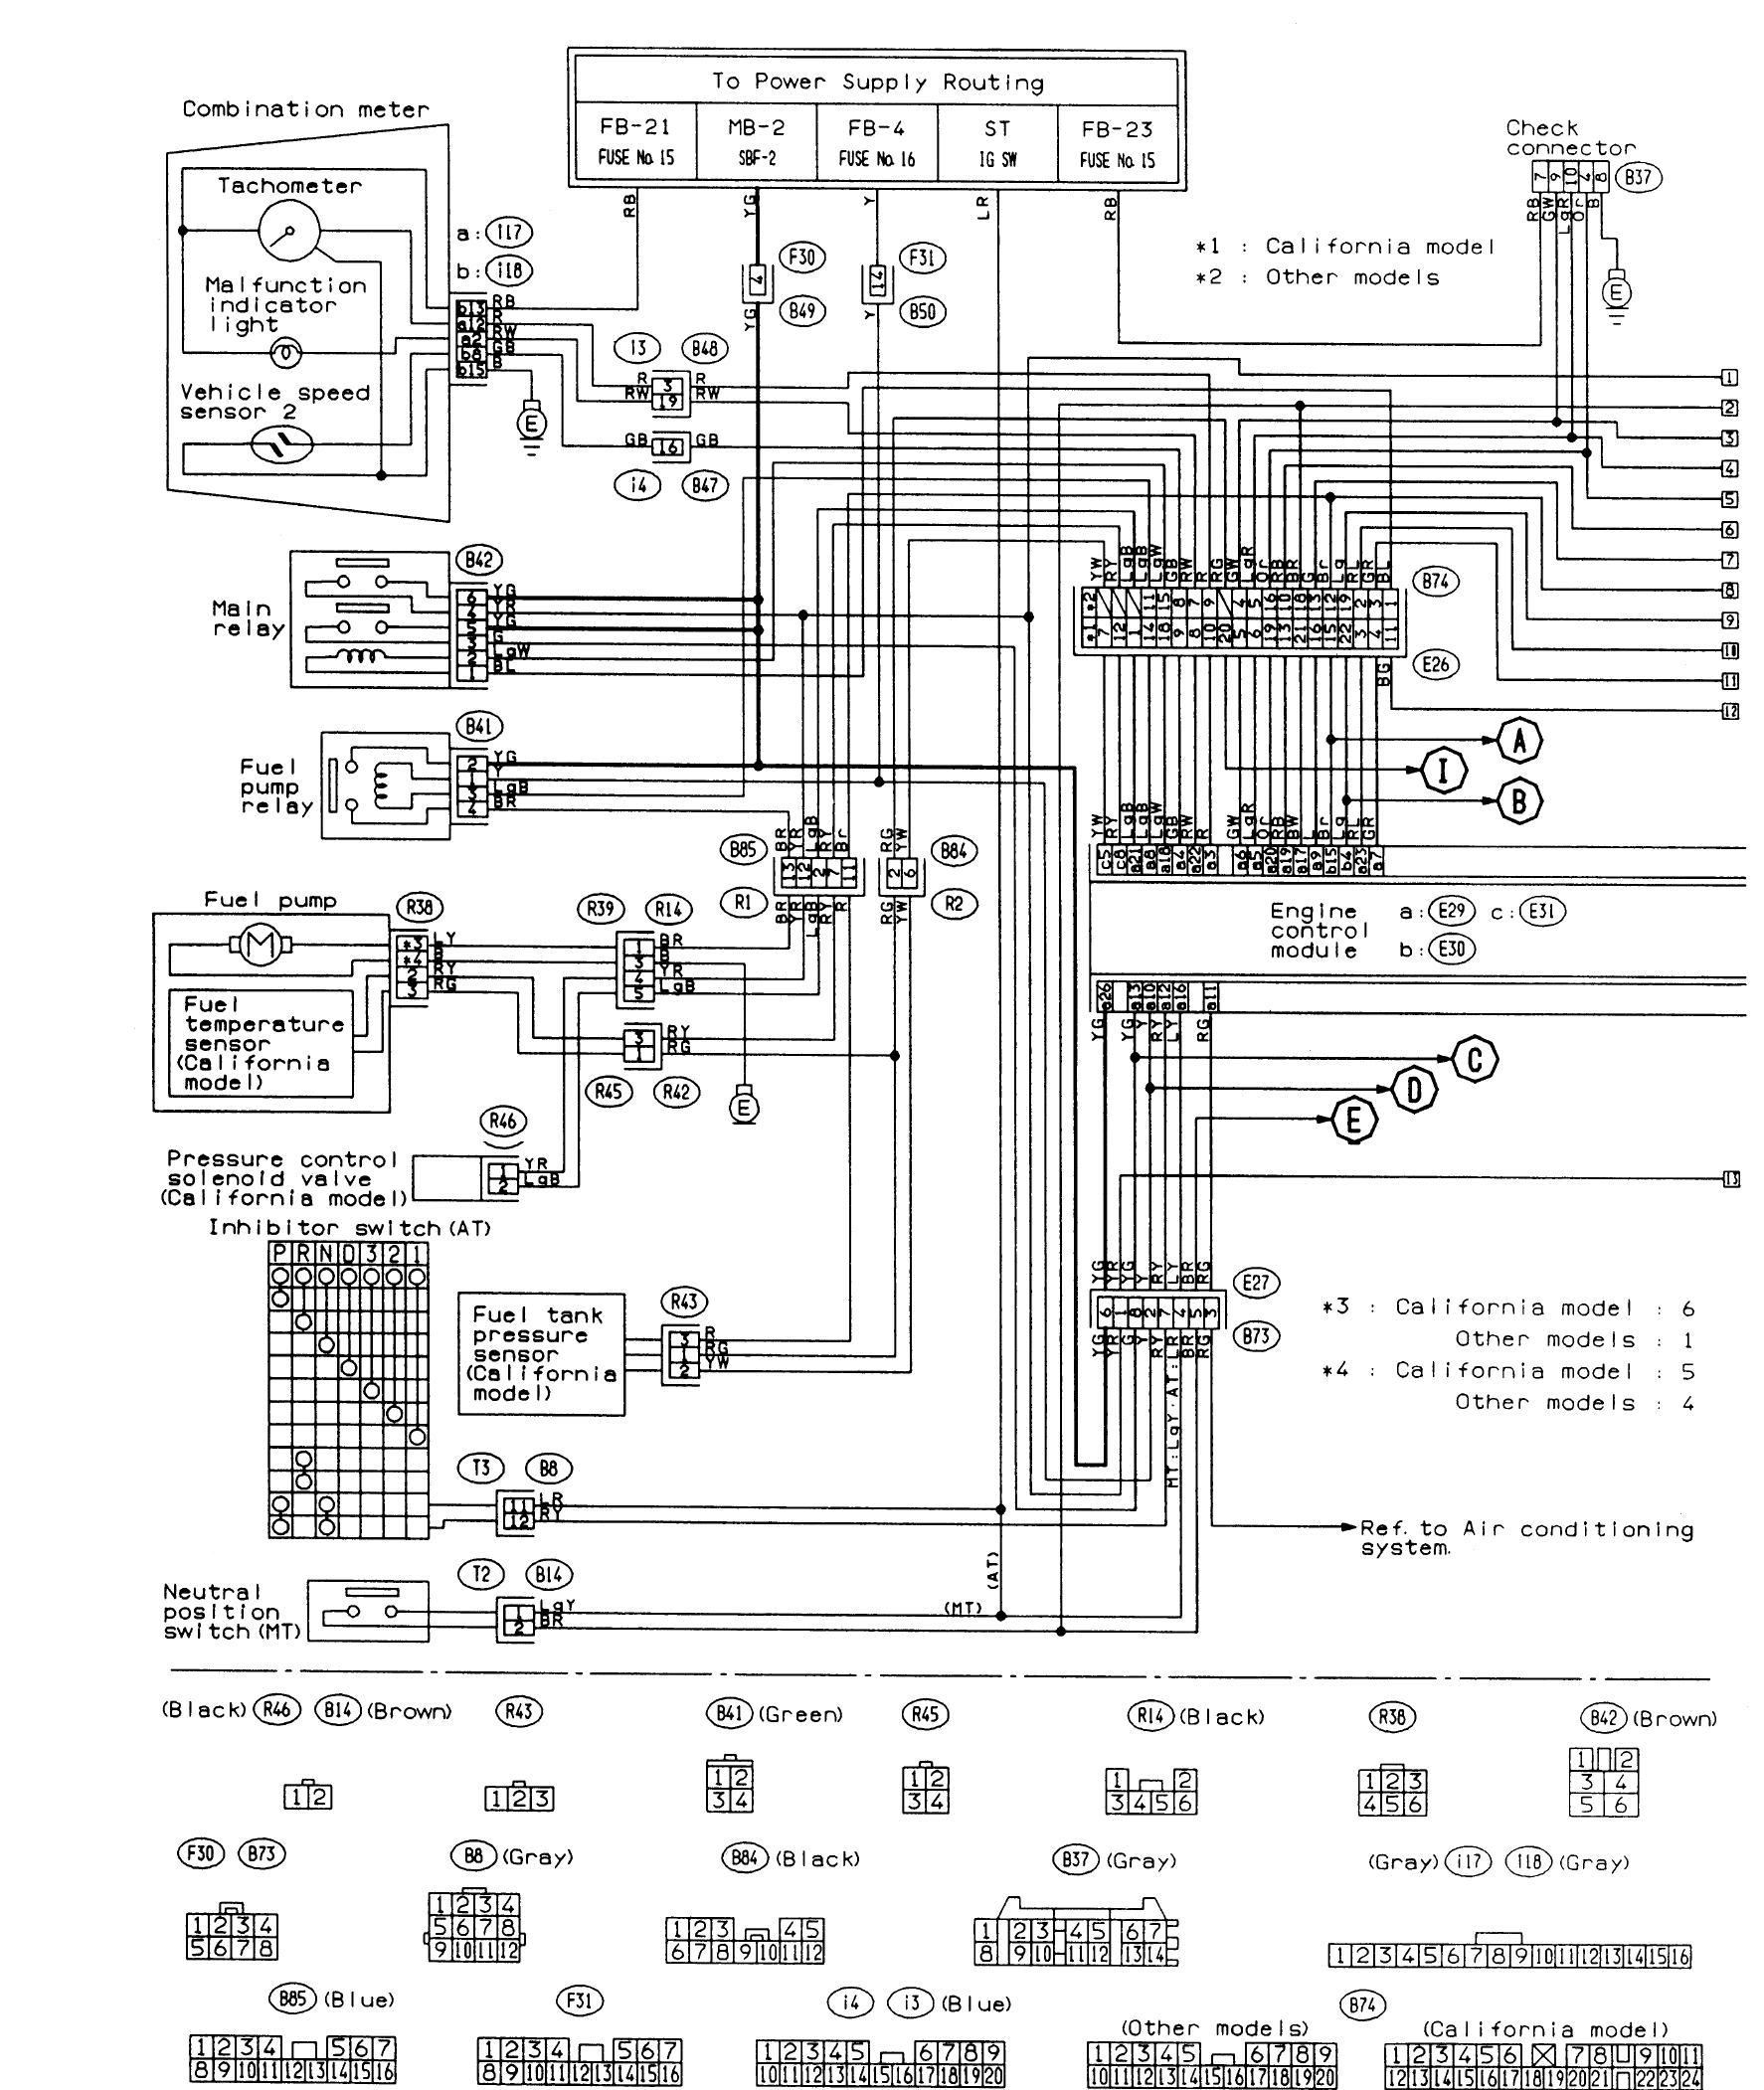 subaru ecu wiring diagram FUSlrCX subaru wiring diagrams 1992 subaru legacy heater wiring schematic Simple Electrical Wiring Diagrams at reclaimingppi.co